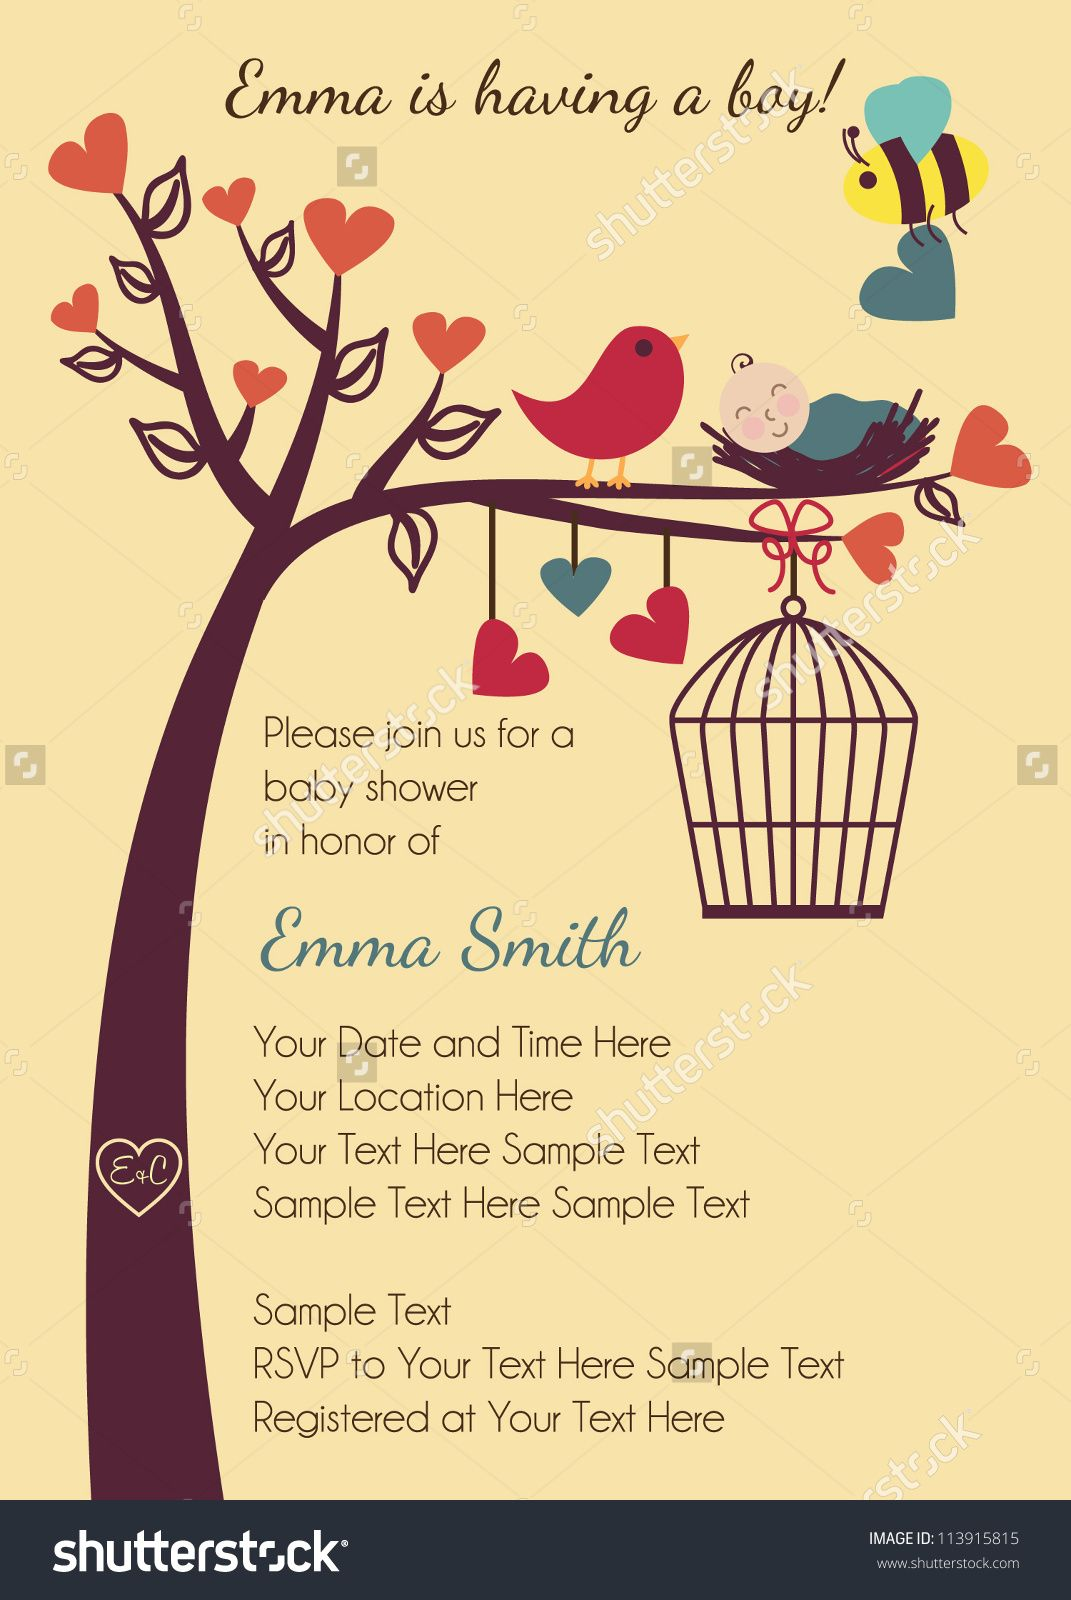 Birds and Bees Baby Shower Invitation | Baby shower | Pinterest ...